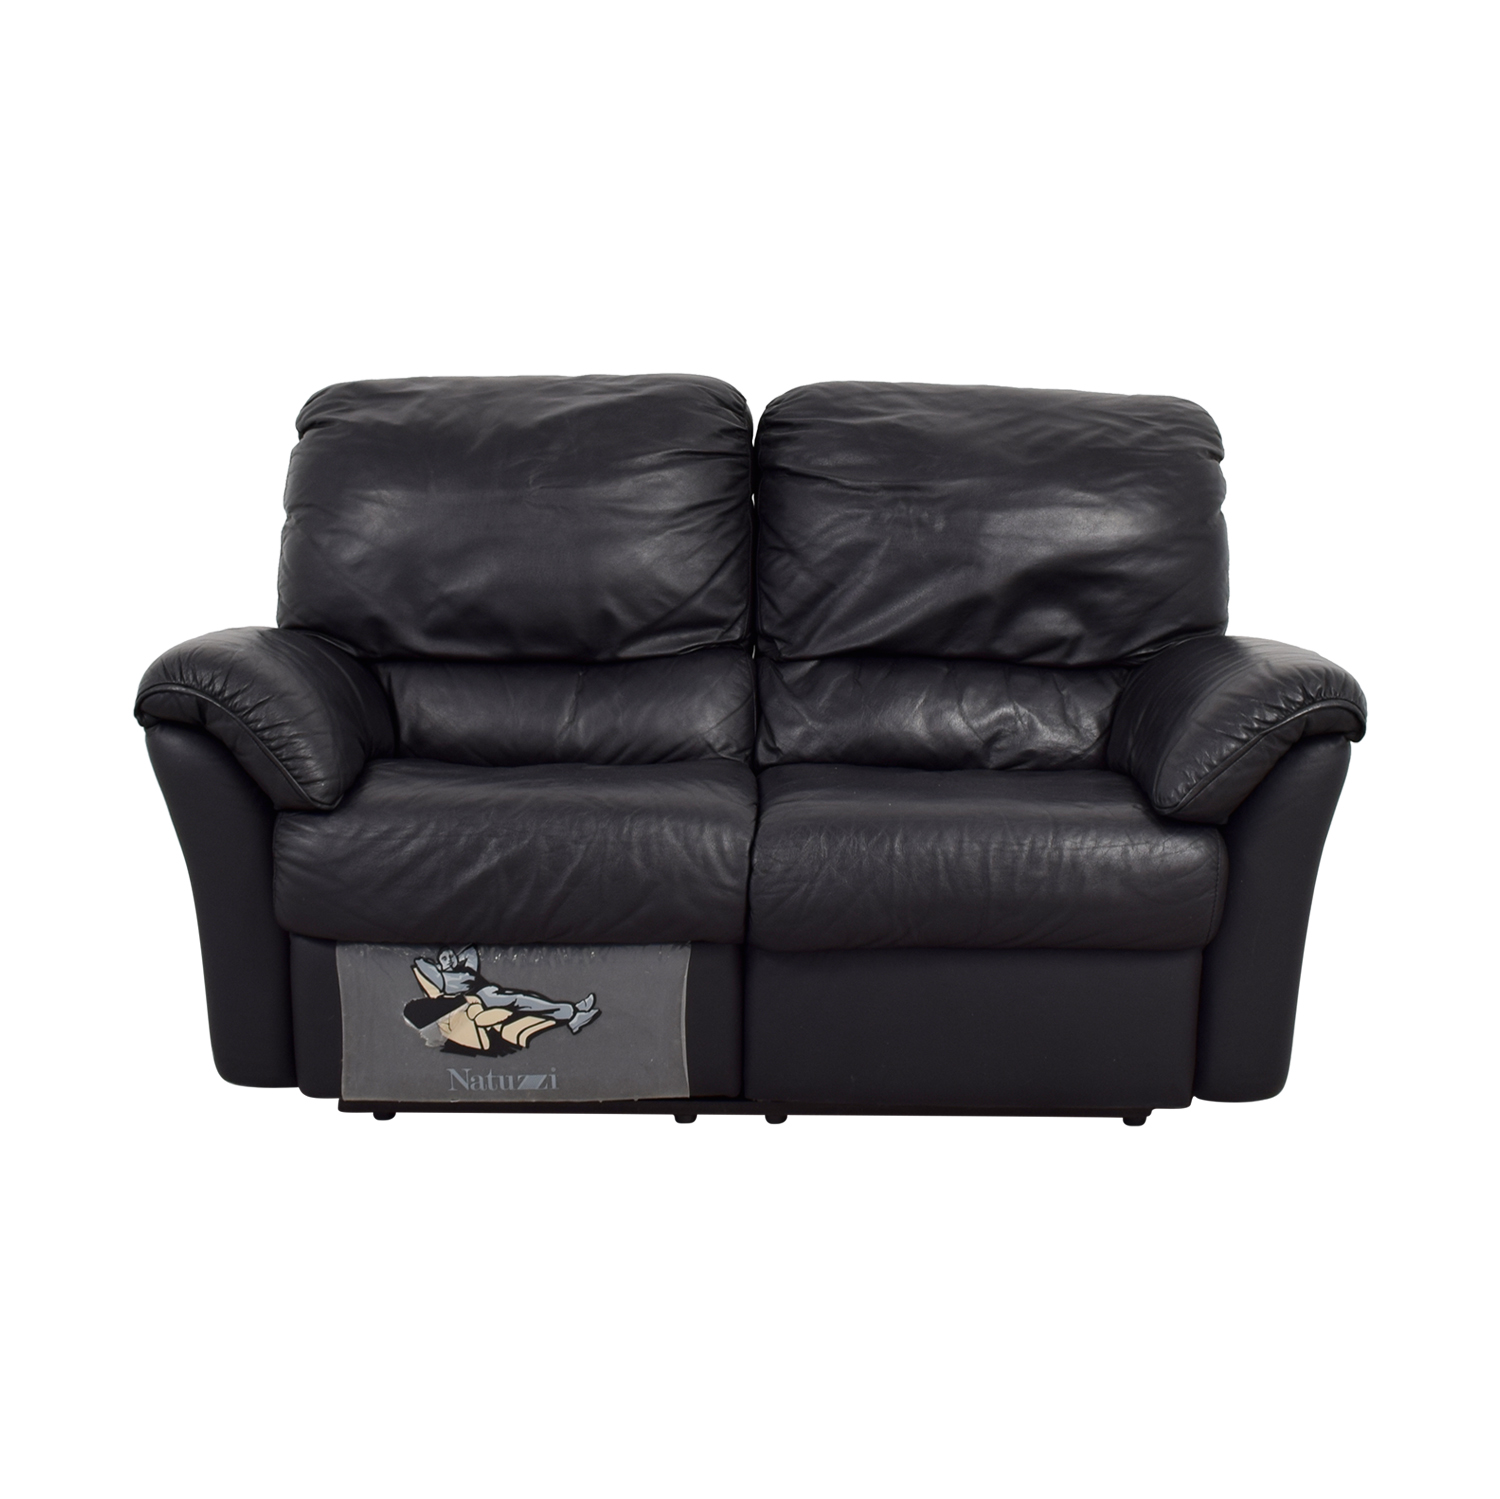 Natuzzi Natuzzi Leather Recliner Loveseat price